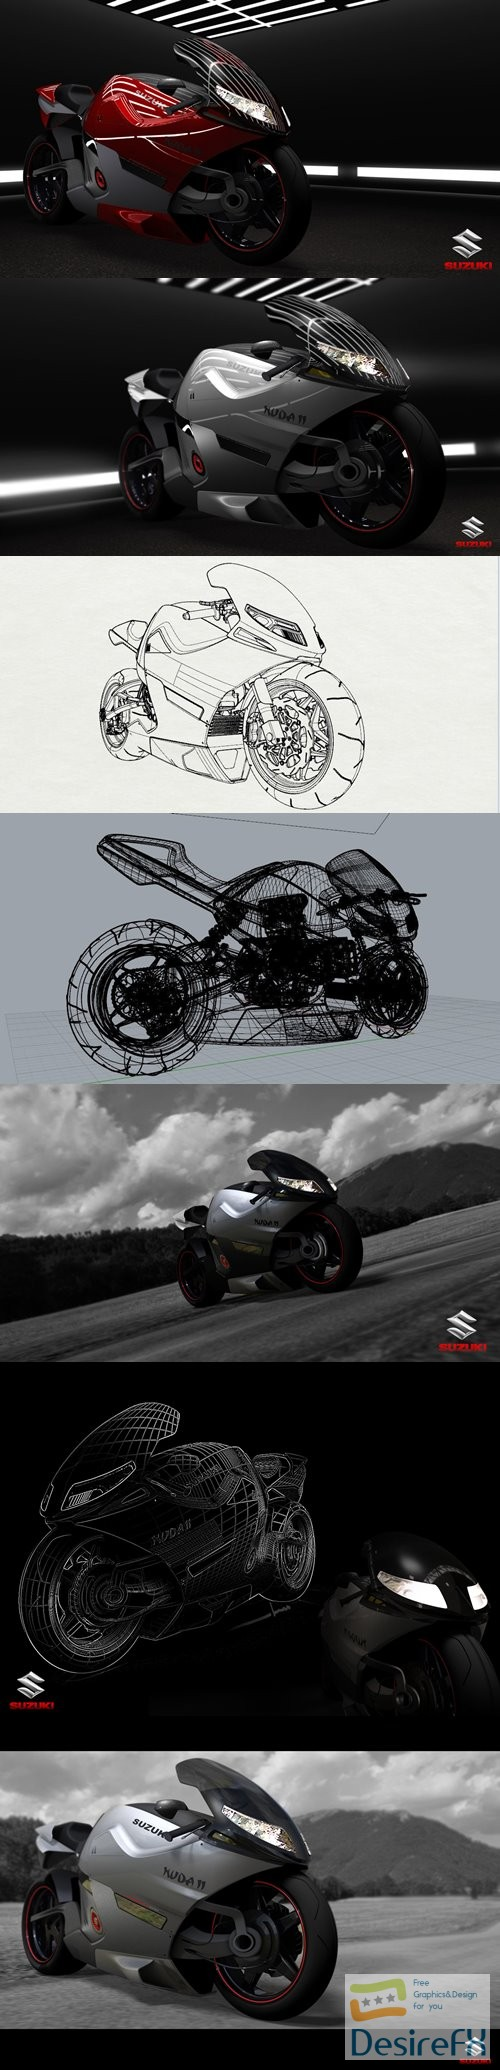 3d-models - Suzuki Nuda II concept bike 3D Model